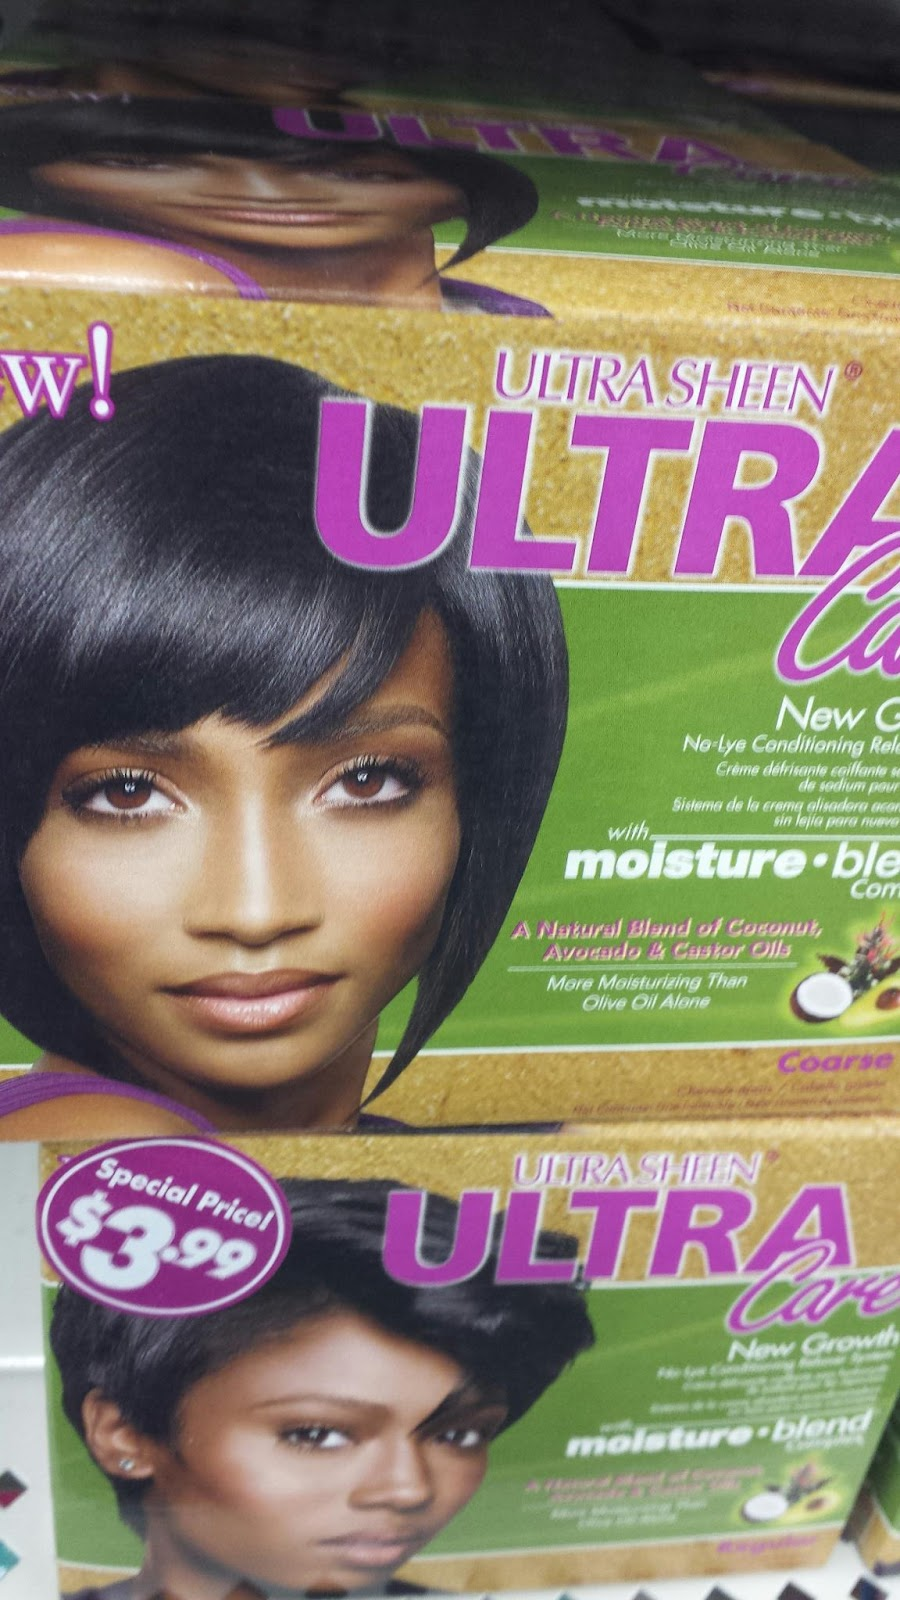 Thrifting Central Ga. : Oh My! Dollar Tree Has Relaxer Kits!